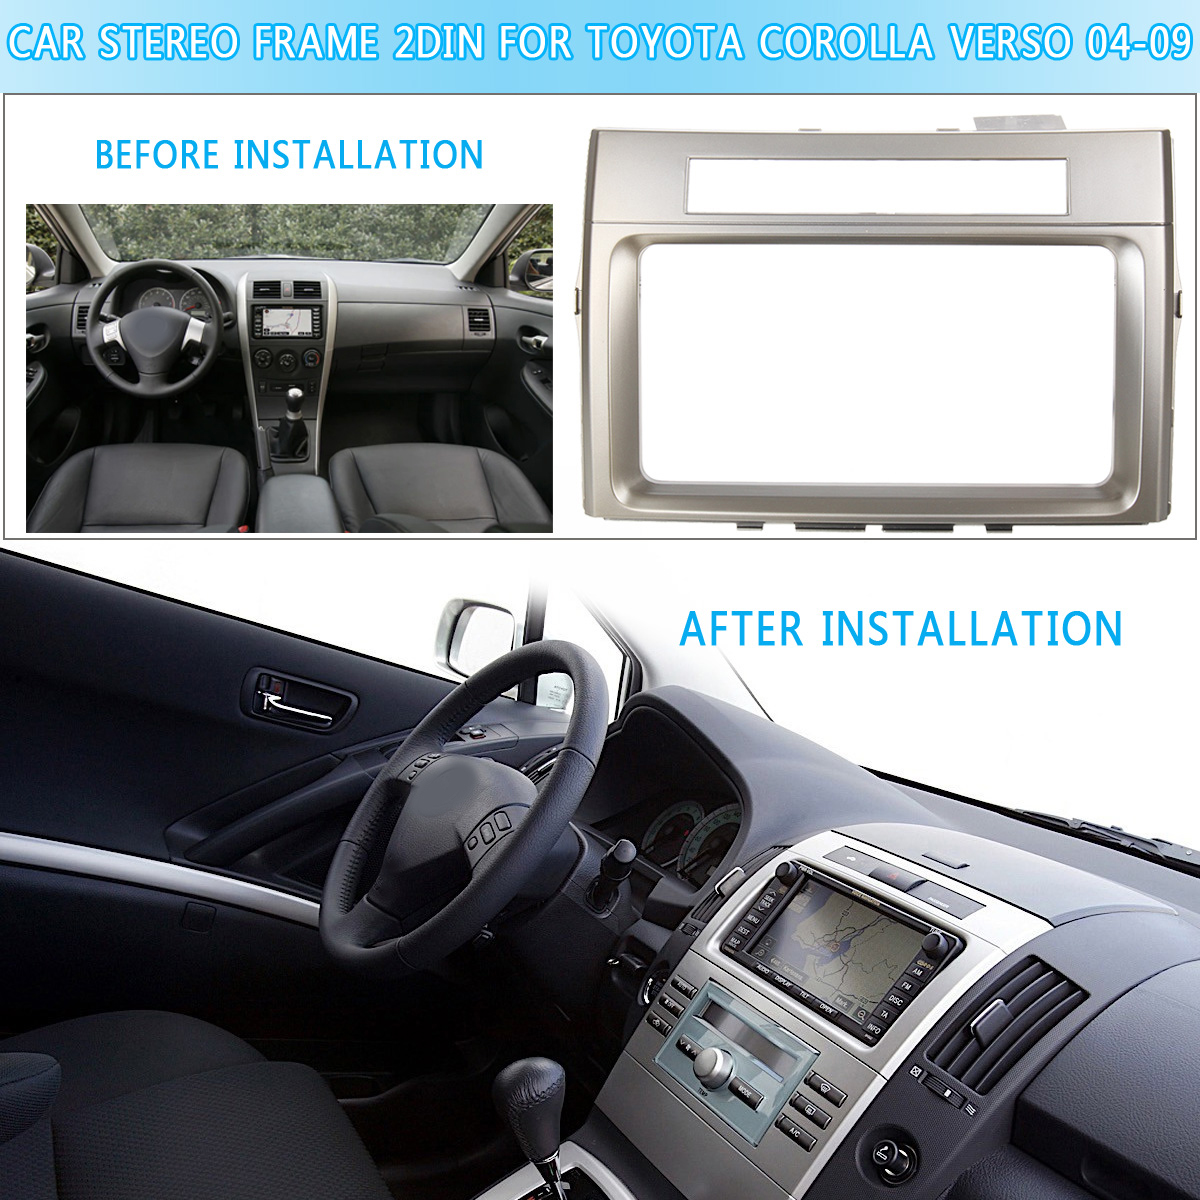 Car CD/DVD Stereo Frame Facia Trim Double-DIN Car For <font><b>TOYOTA</b></font> <font><b>Corolla</b></font> Verso 2004 <font><b>2005</b></font> 2006 2007 2008 2009 Adapter Dash kit image